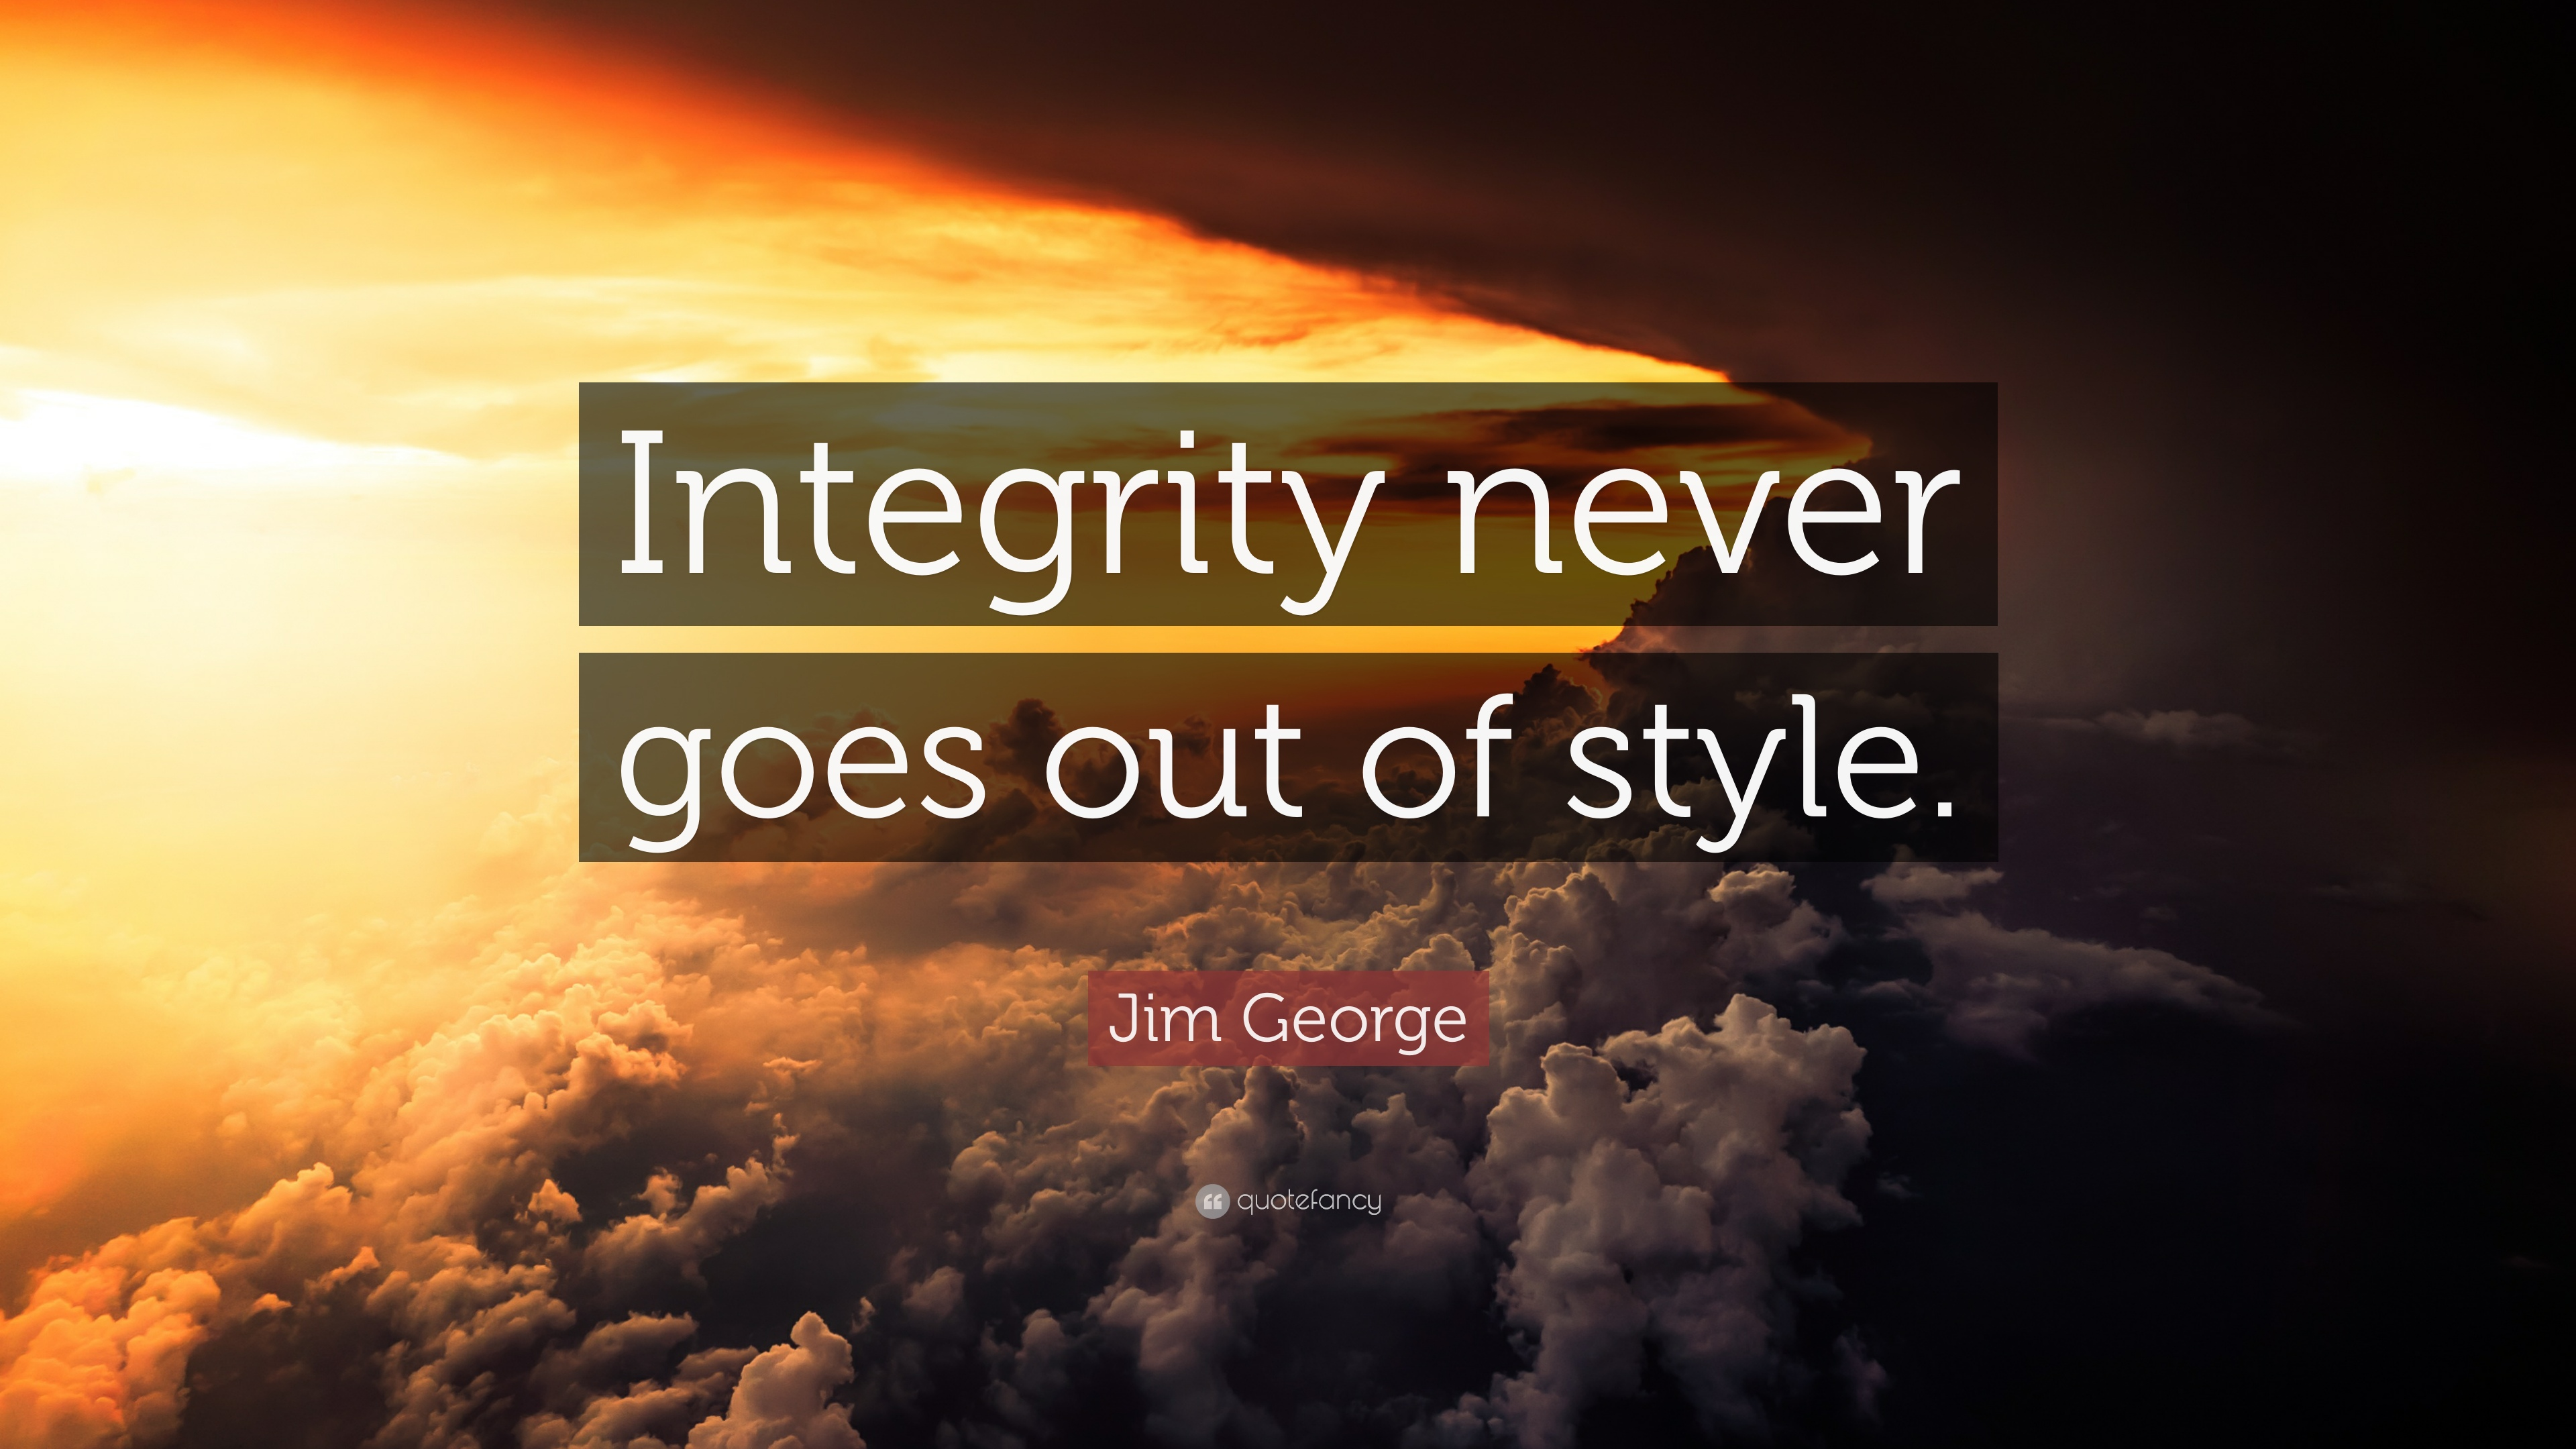 jim george quote   u201cintegrity never goes out of style  u201d  17